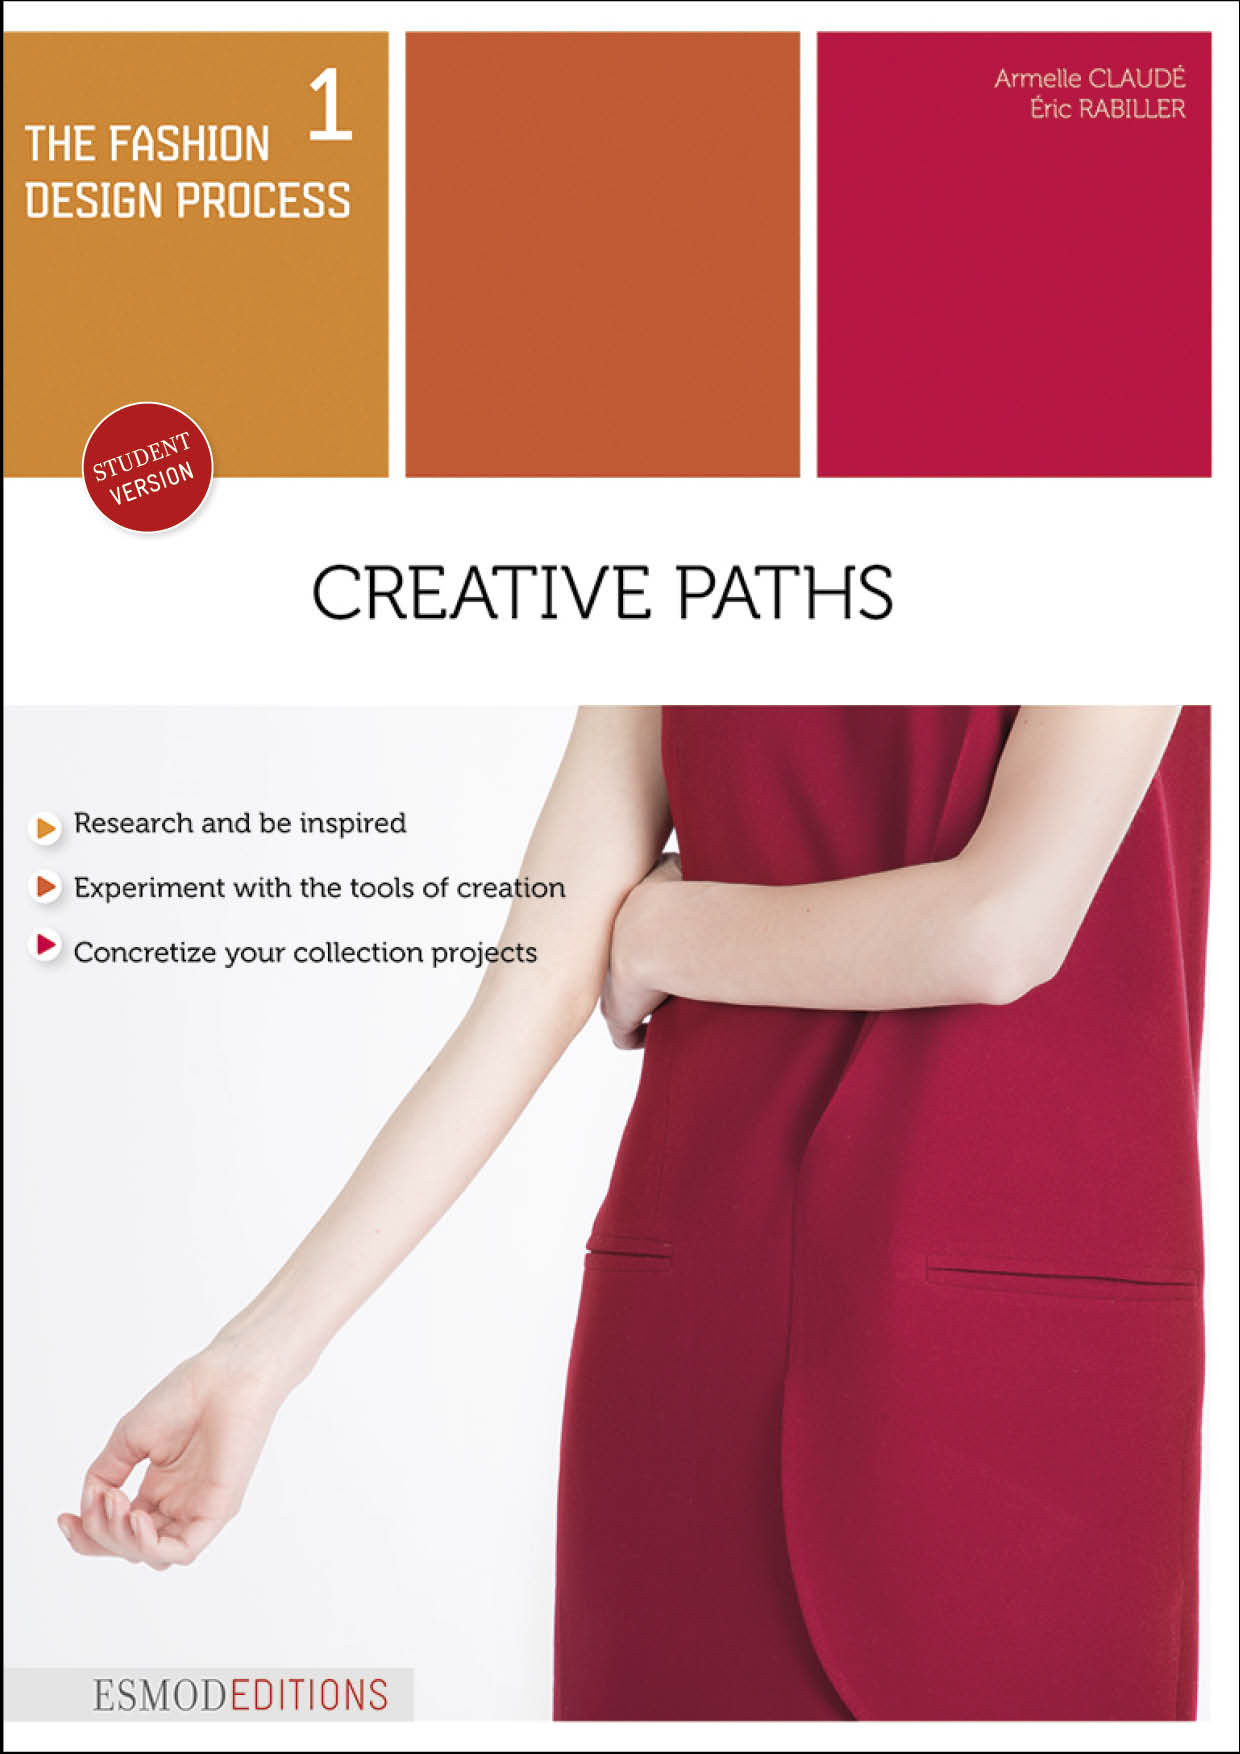 The fashion design process tome 1: Creative paths (enhanced version)